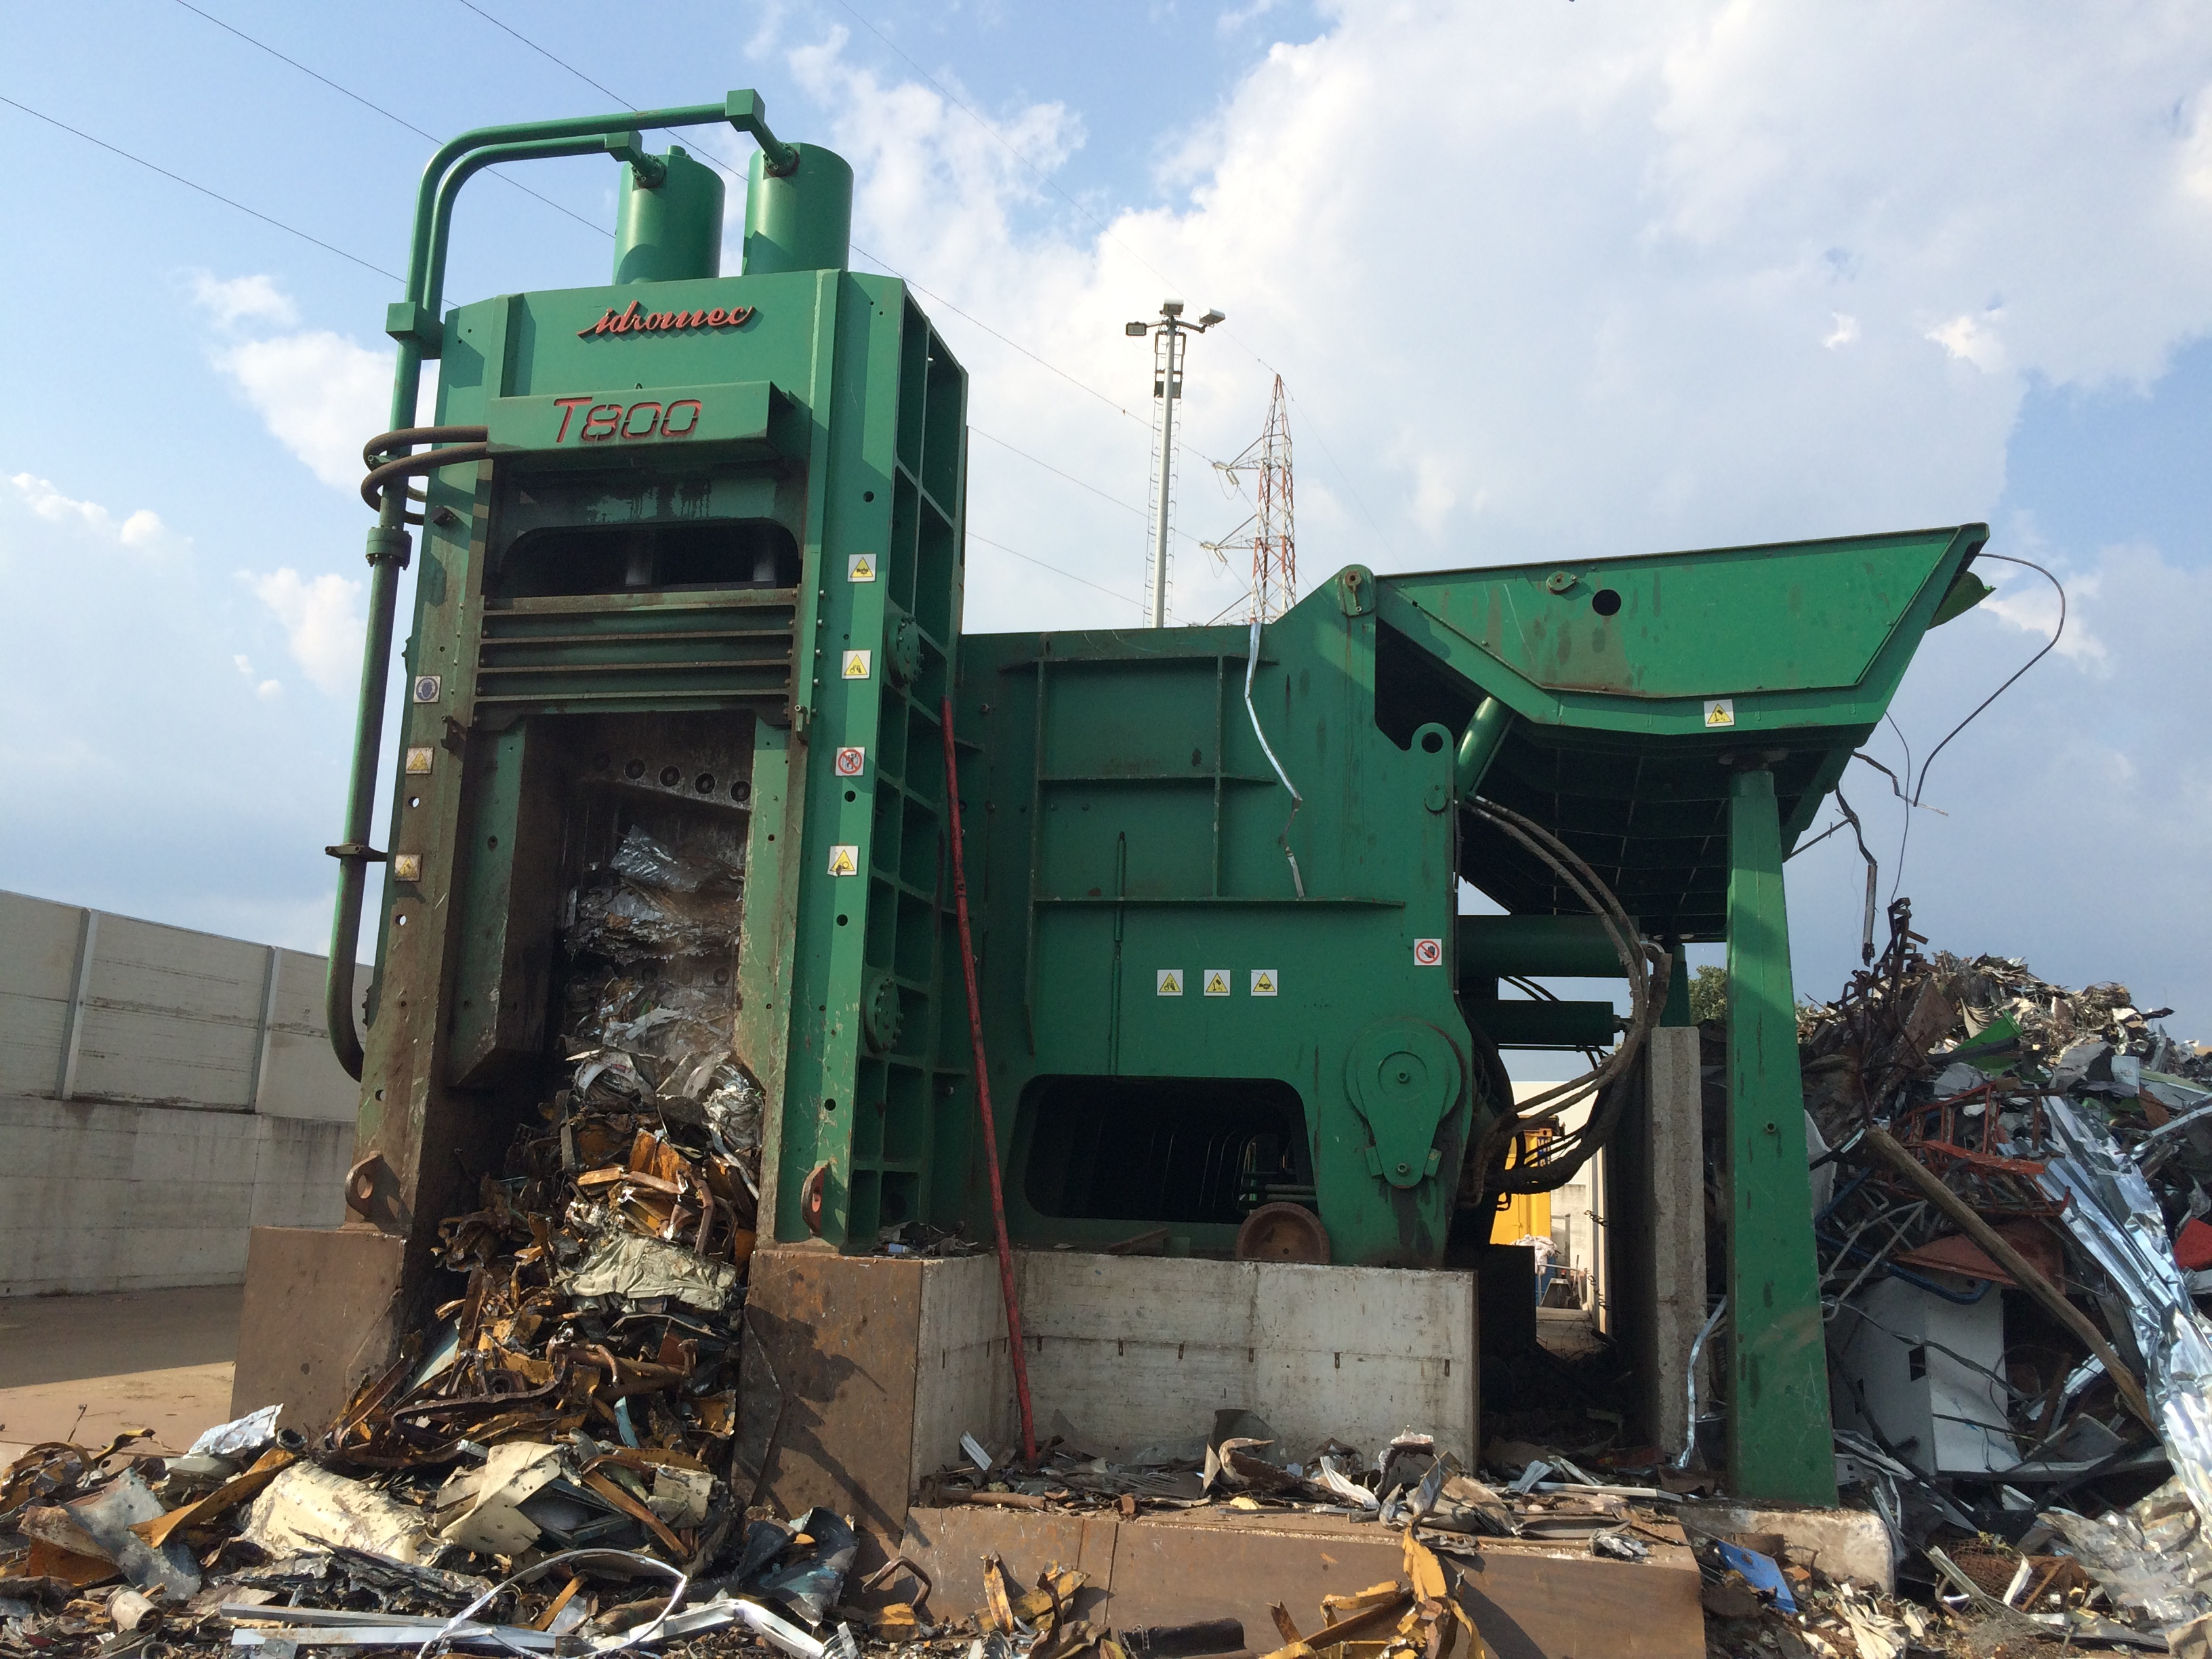 Shear-balers Idromec T800SL for processing metals and scrap